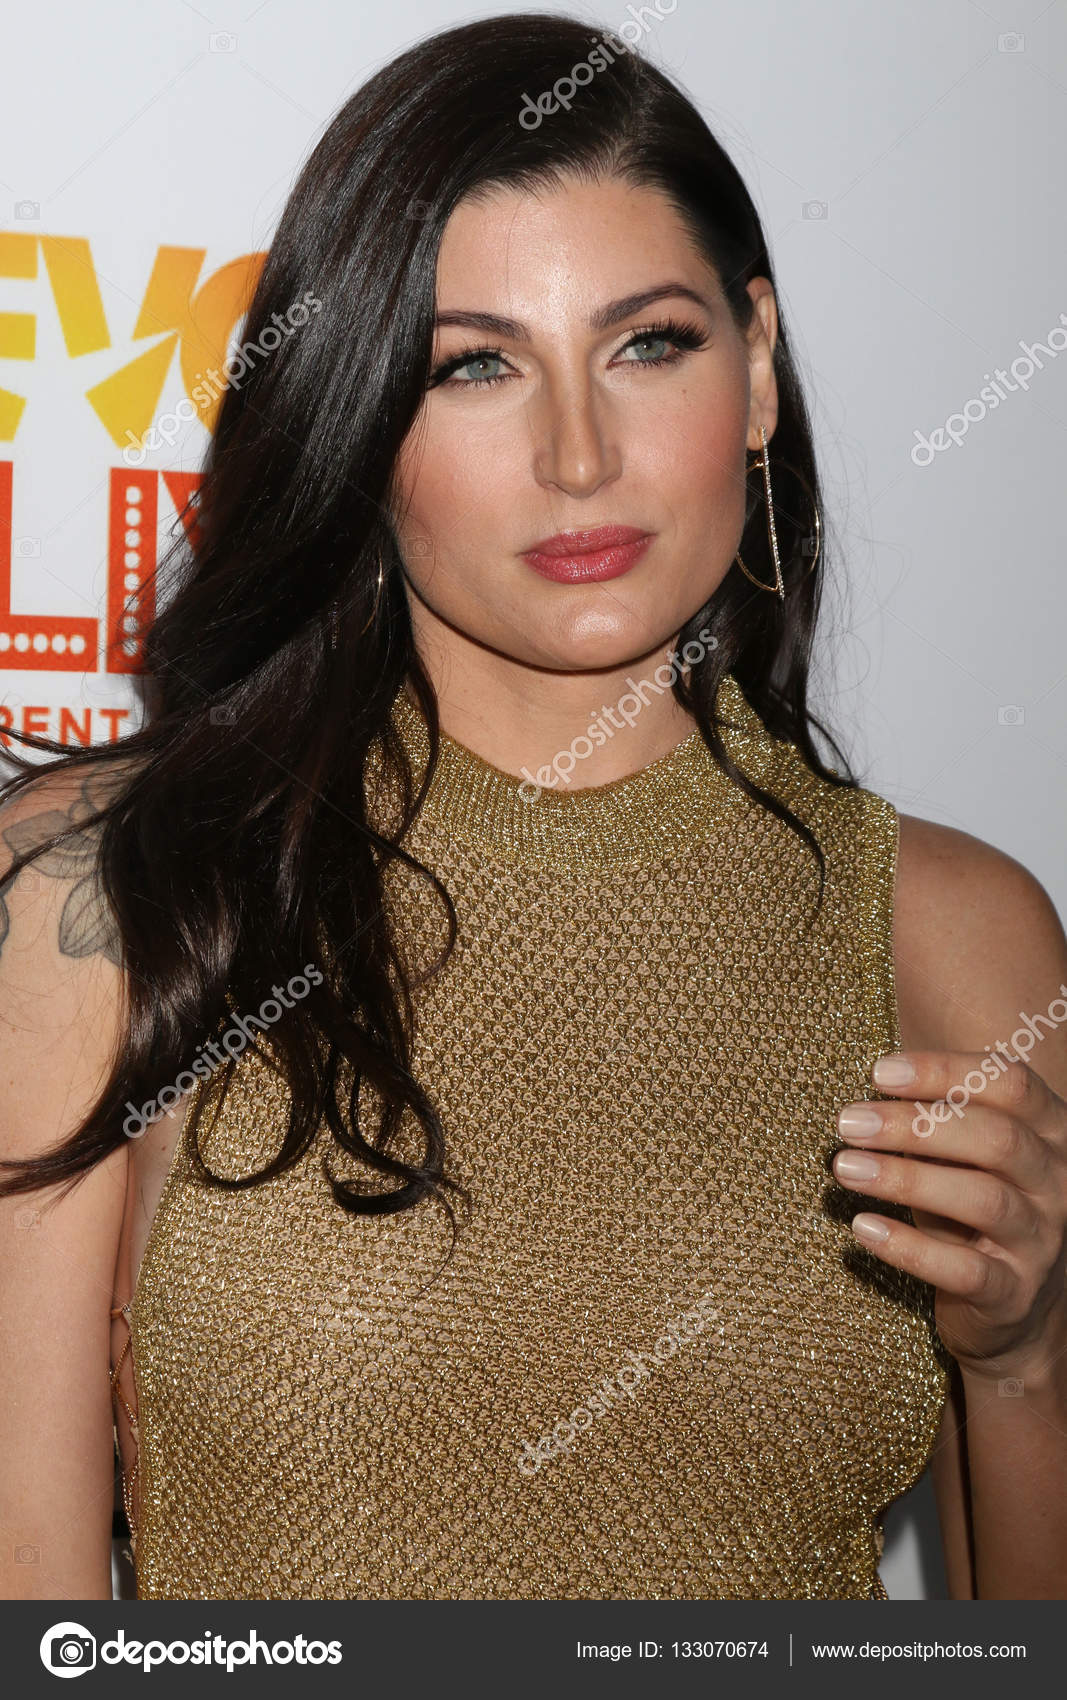 Forum on this topic: Zoe lister jones variety and women in film emmy nominee celebration in la, trace-lysette-sexy/